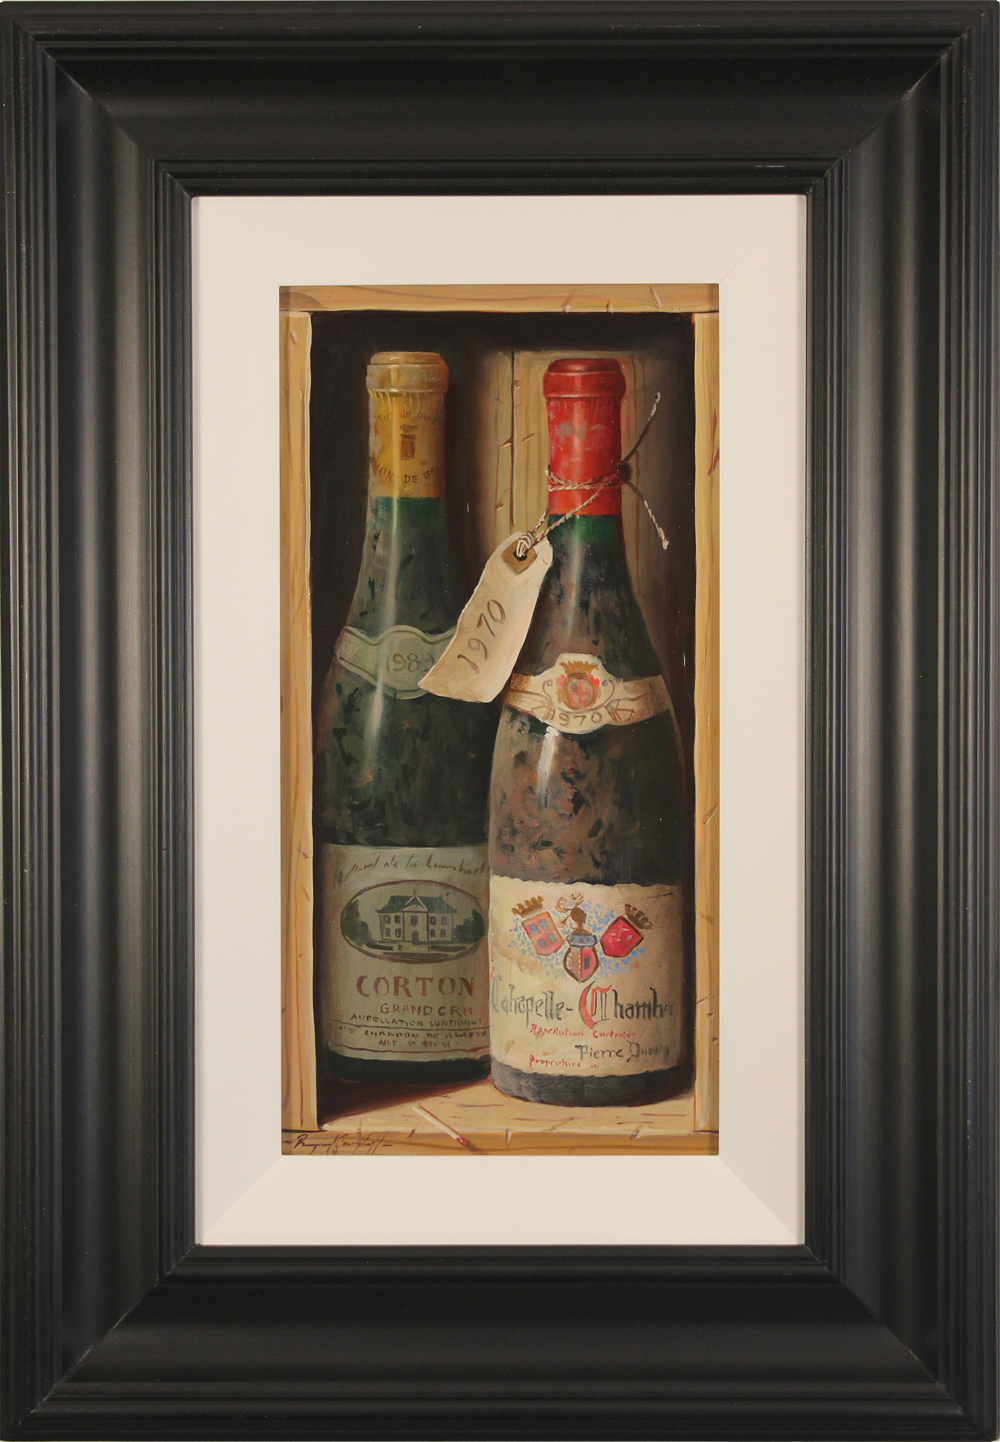 Raymond Campbell, Original oil painting on panel, Corton Grand Cru, 1989 Click to enlarge